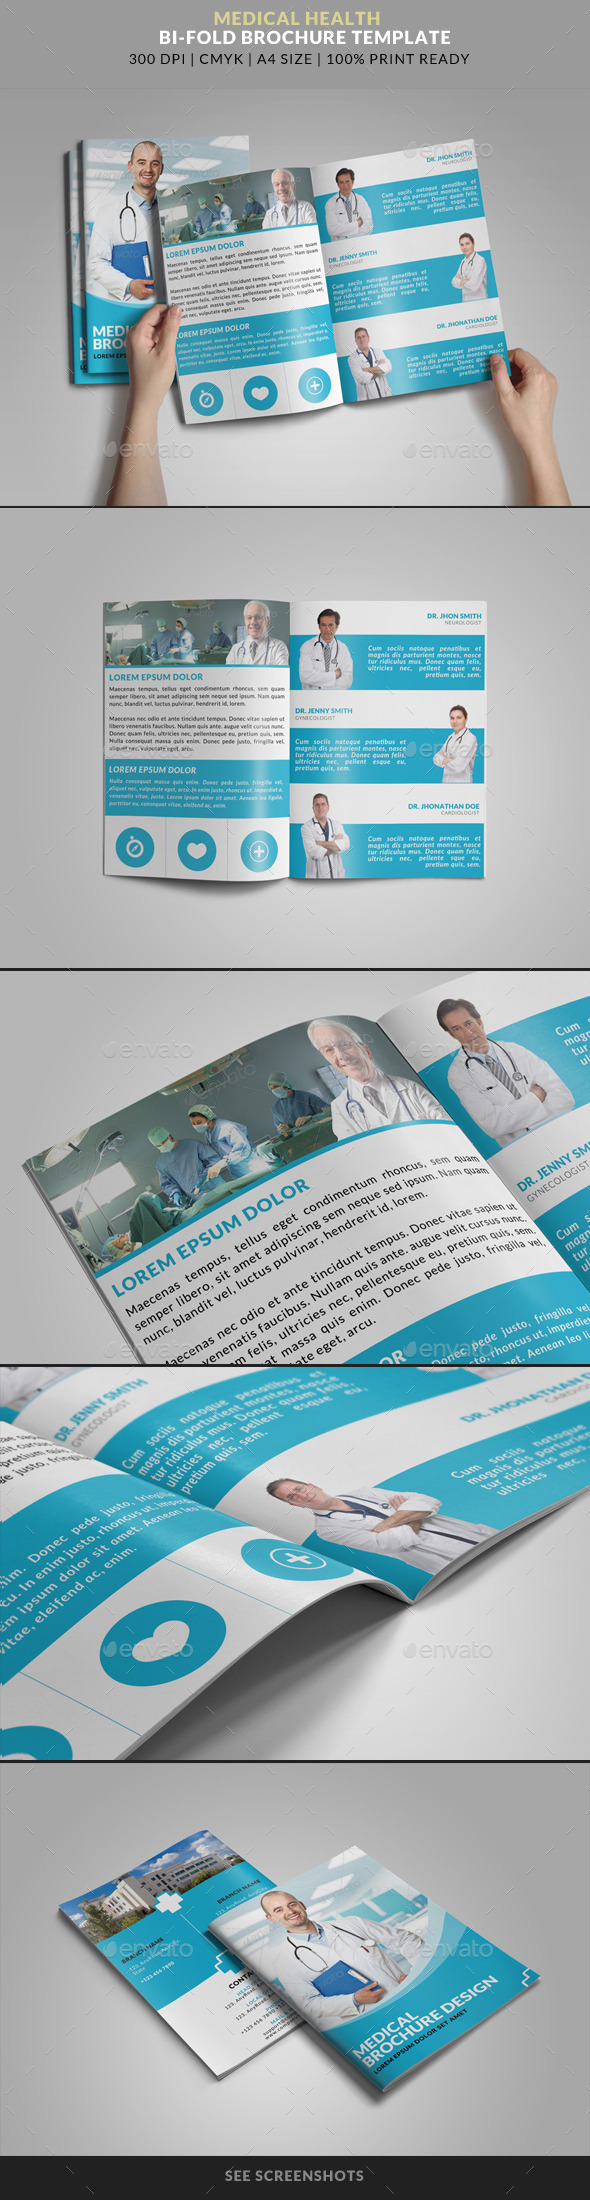 GraphicRiver Medical Health Doctor Hospital Bifold Brochure 8728992